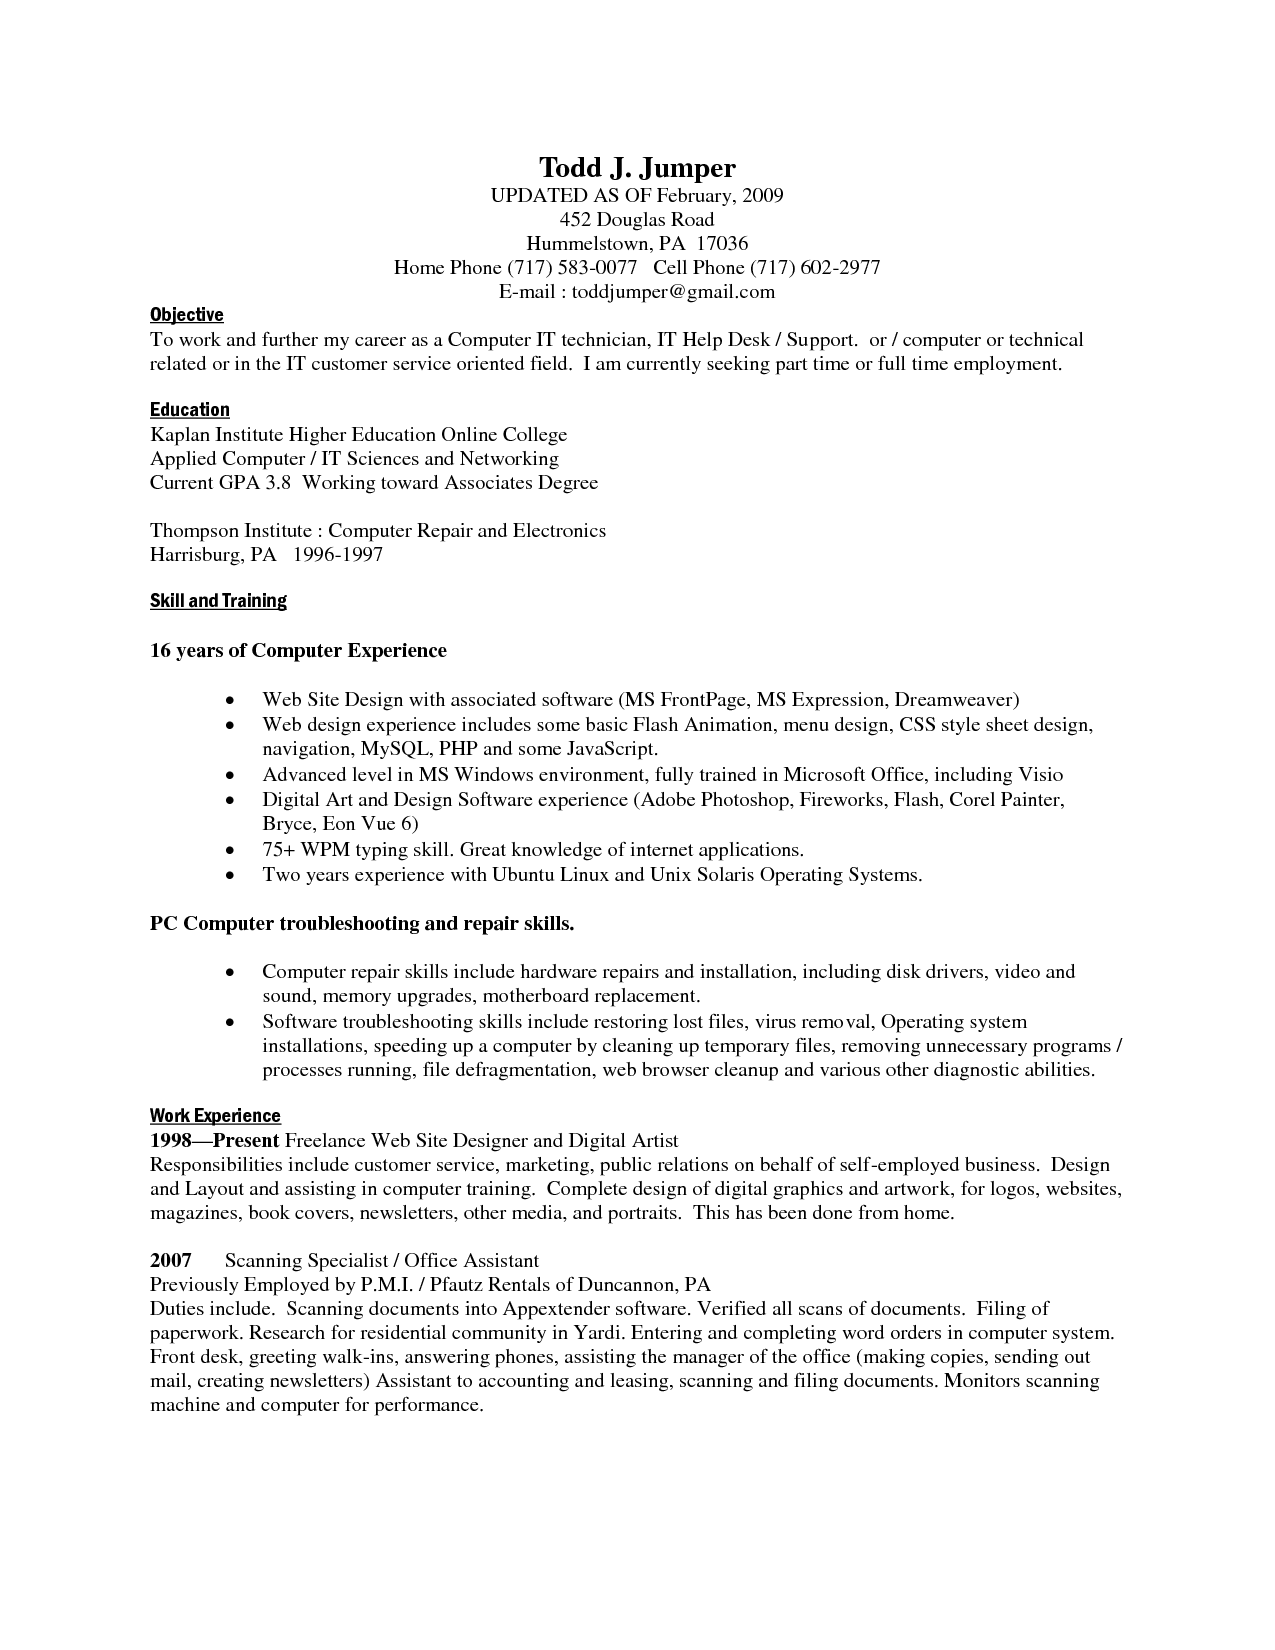 computer skills on sample resume     resumecareer info  computer